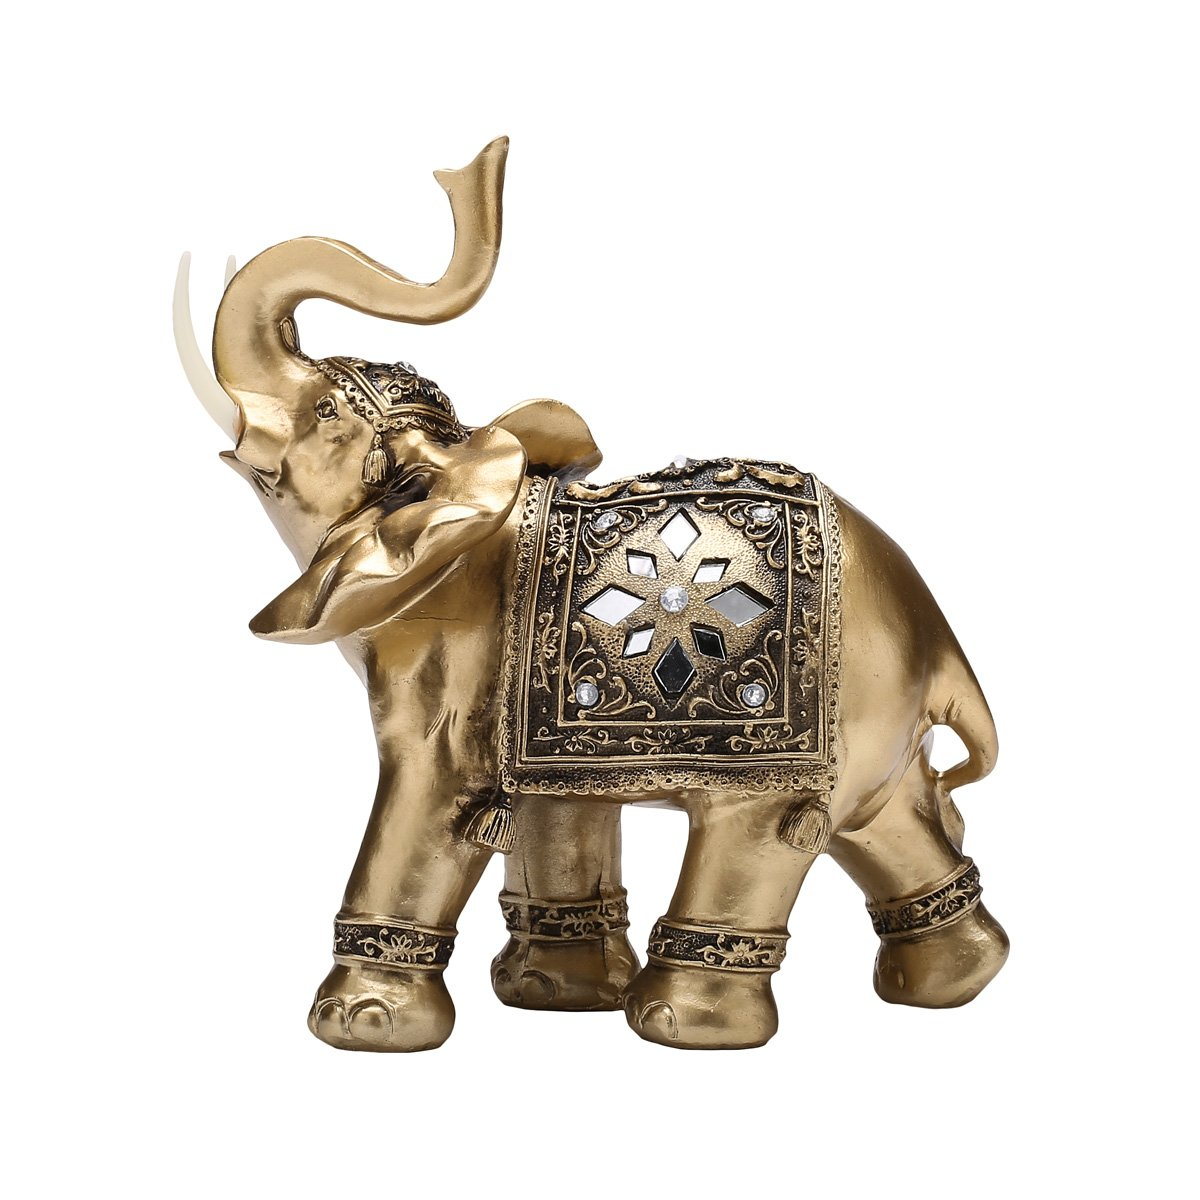 TOUCH MISS Golden Thai Elephant with Trunk Raised Collectible Figurines(Large)